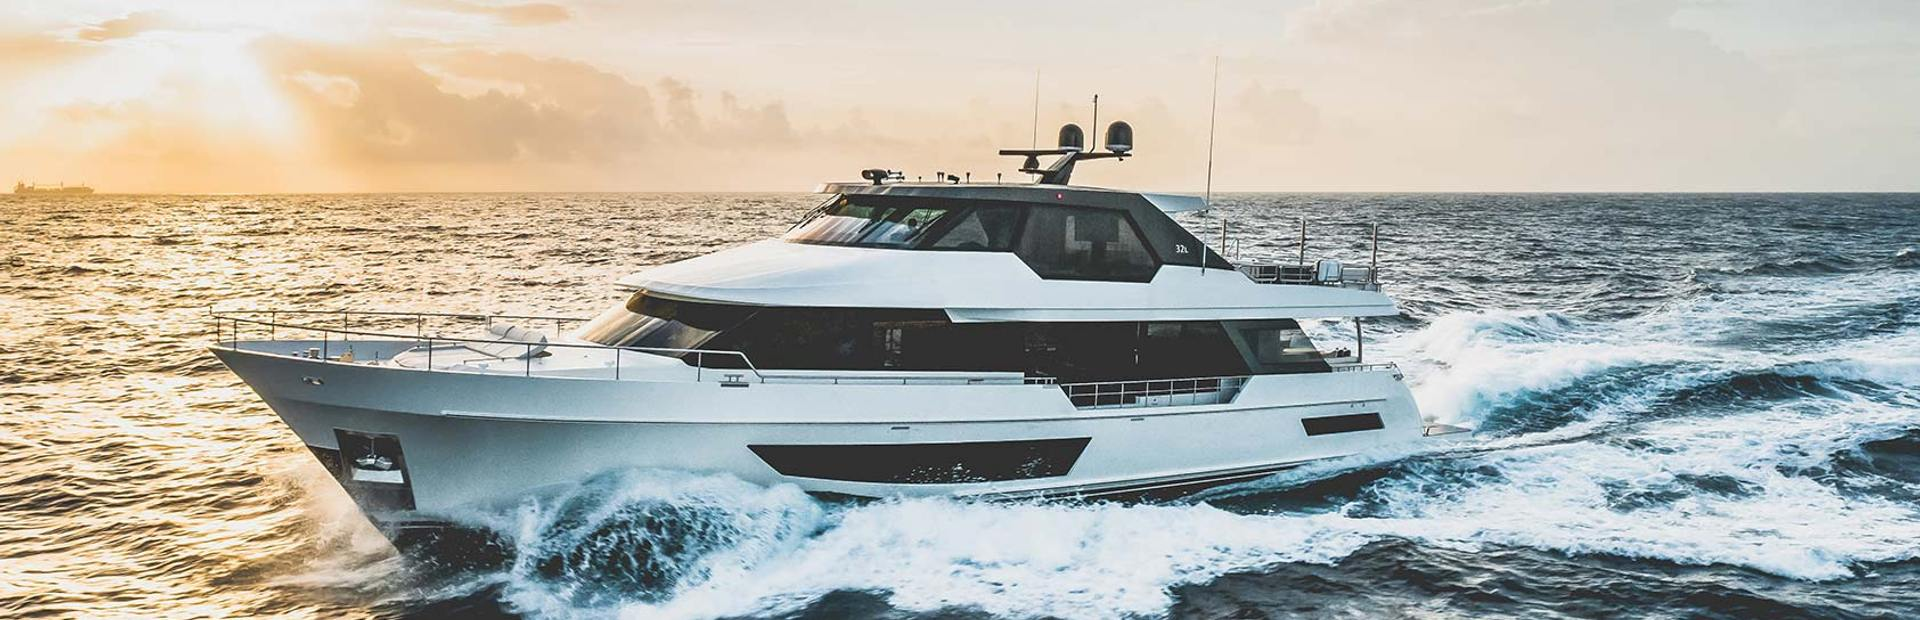 32L Yacht Charter